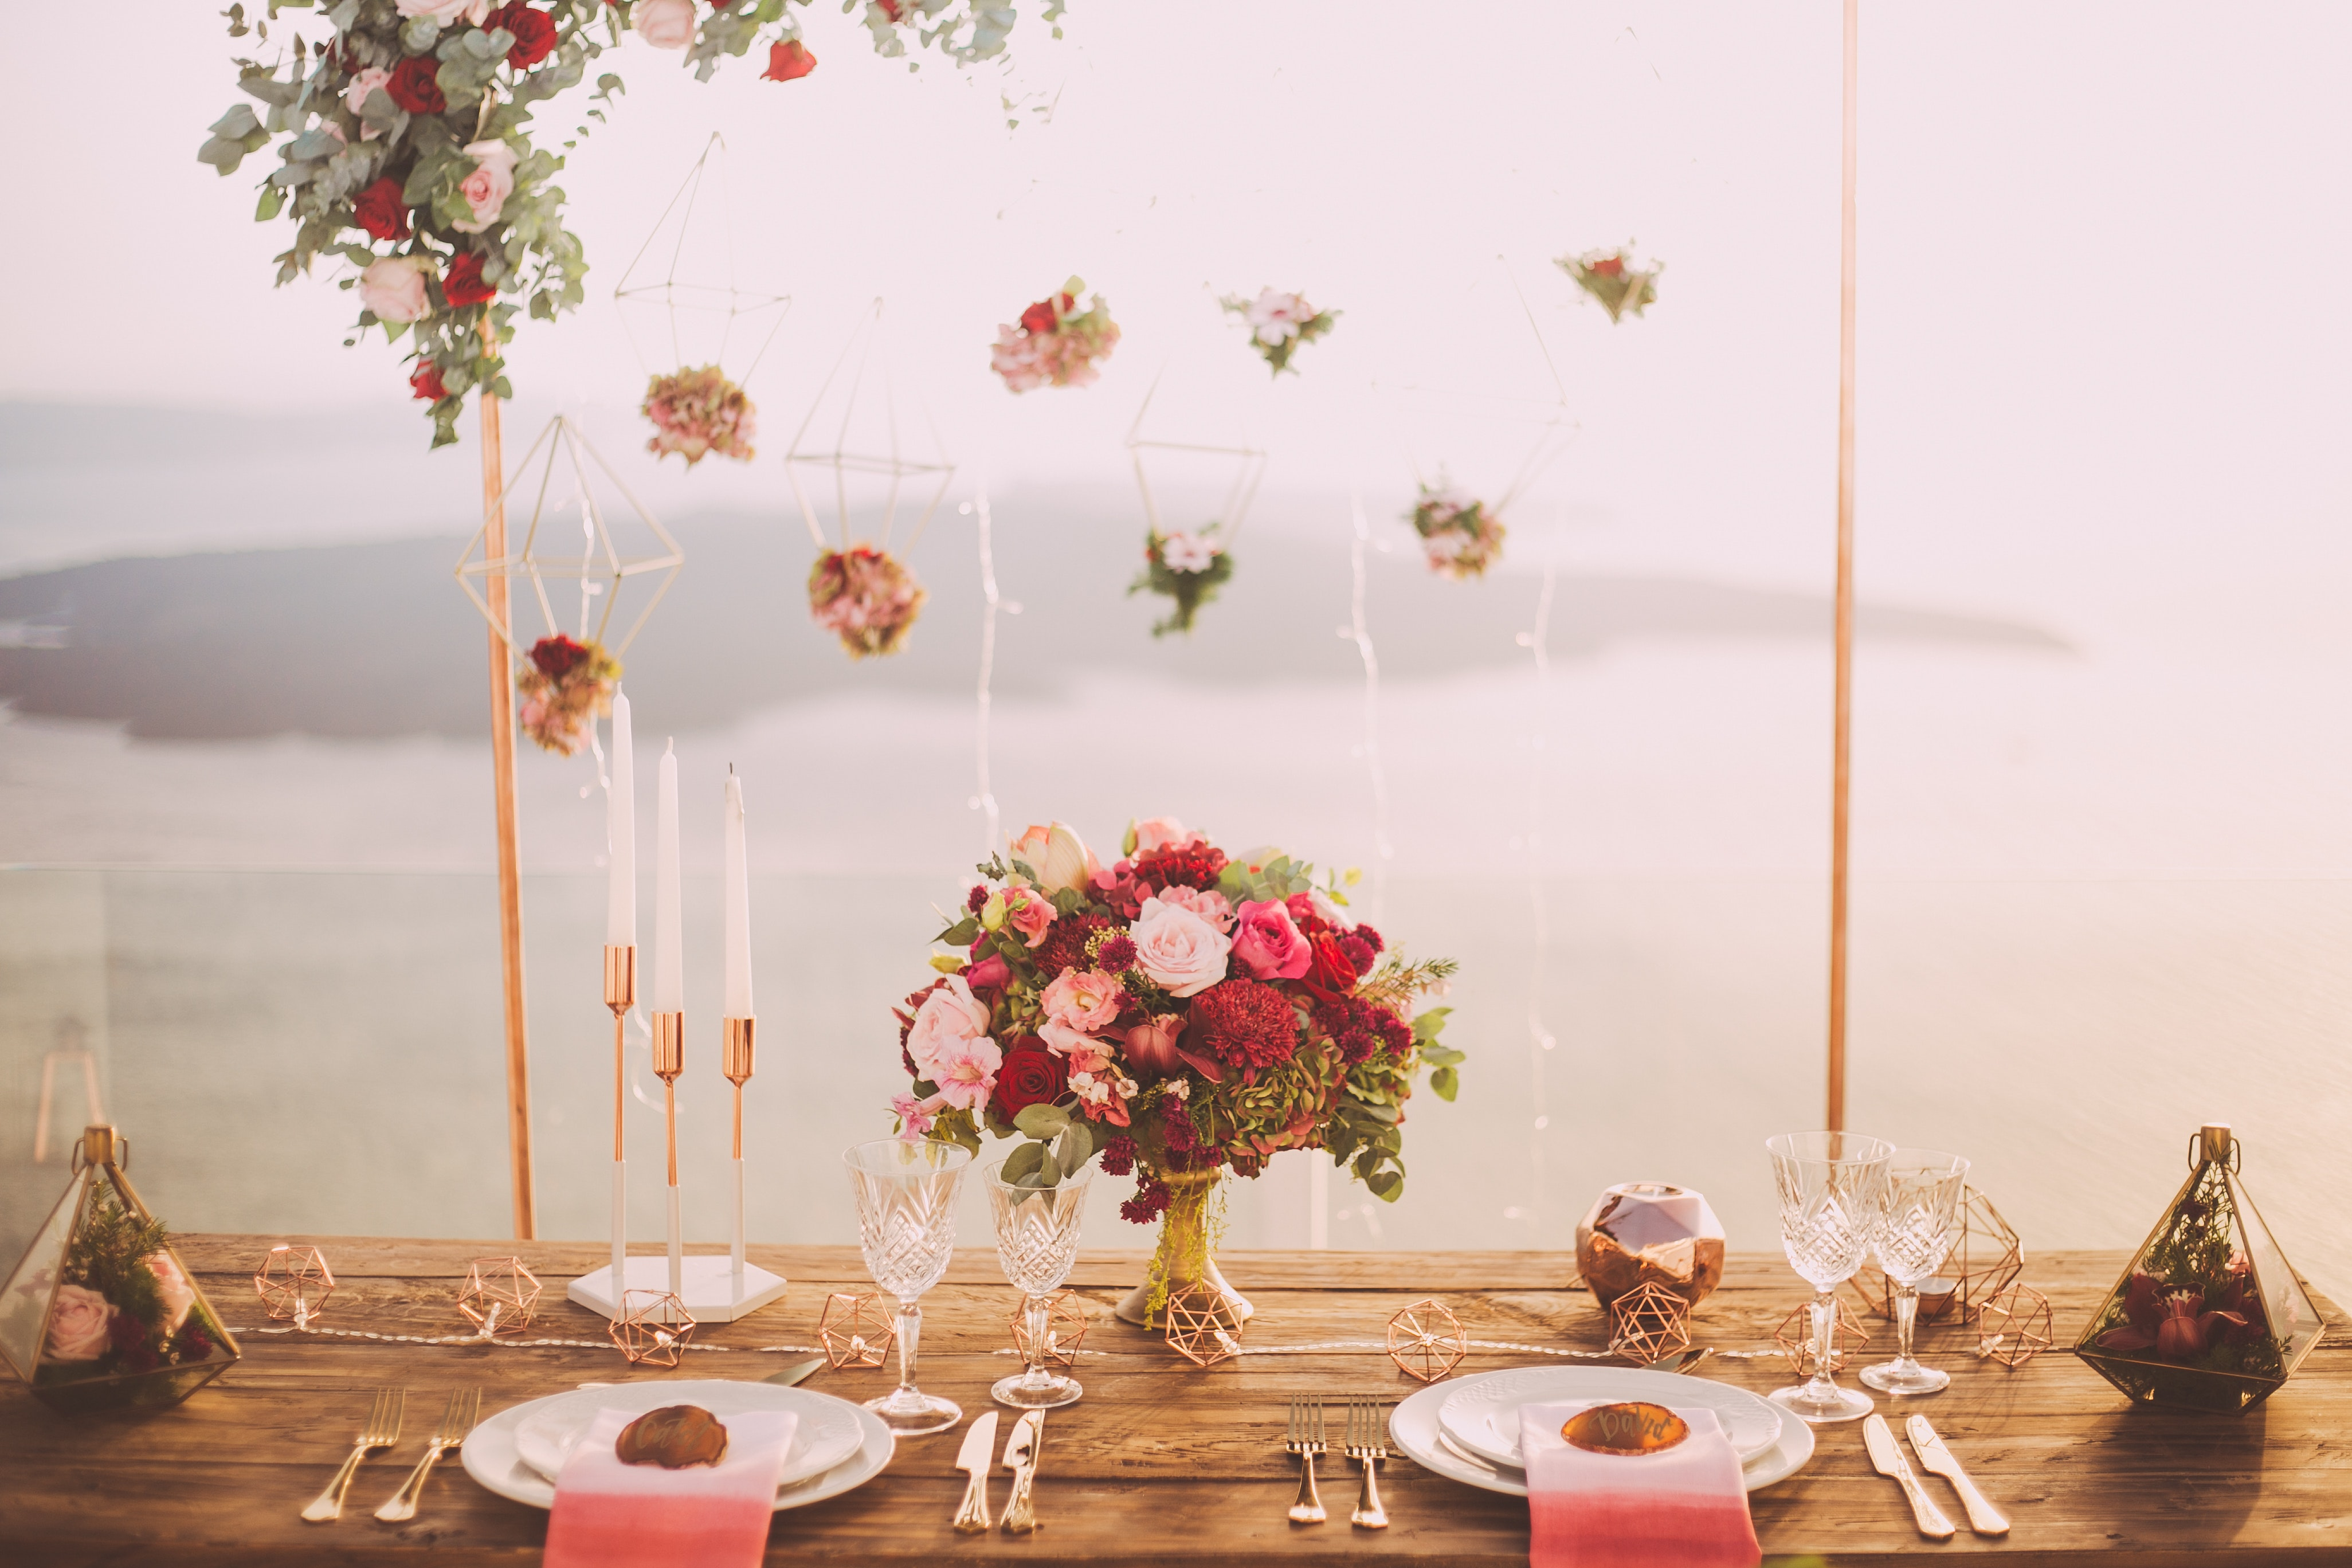 Tapered Candles and Table Setting